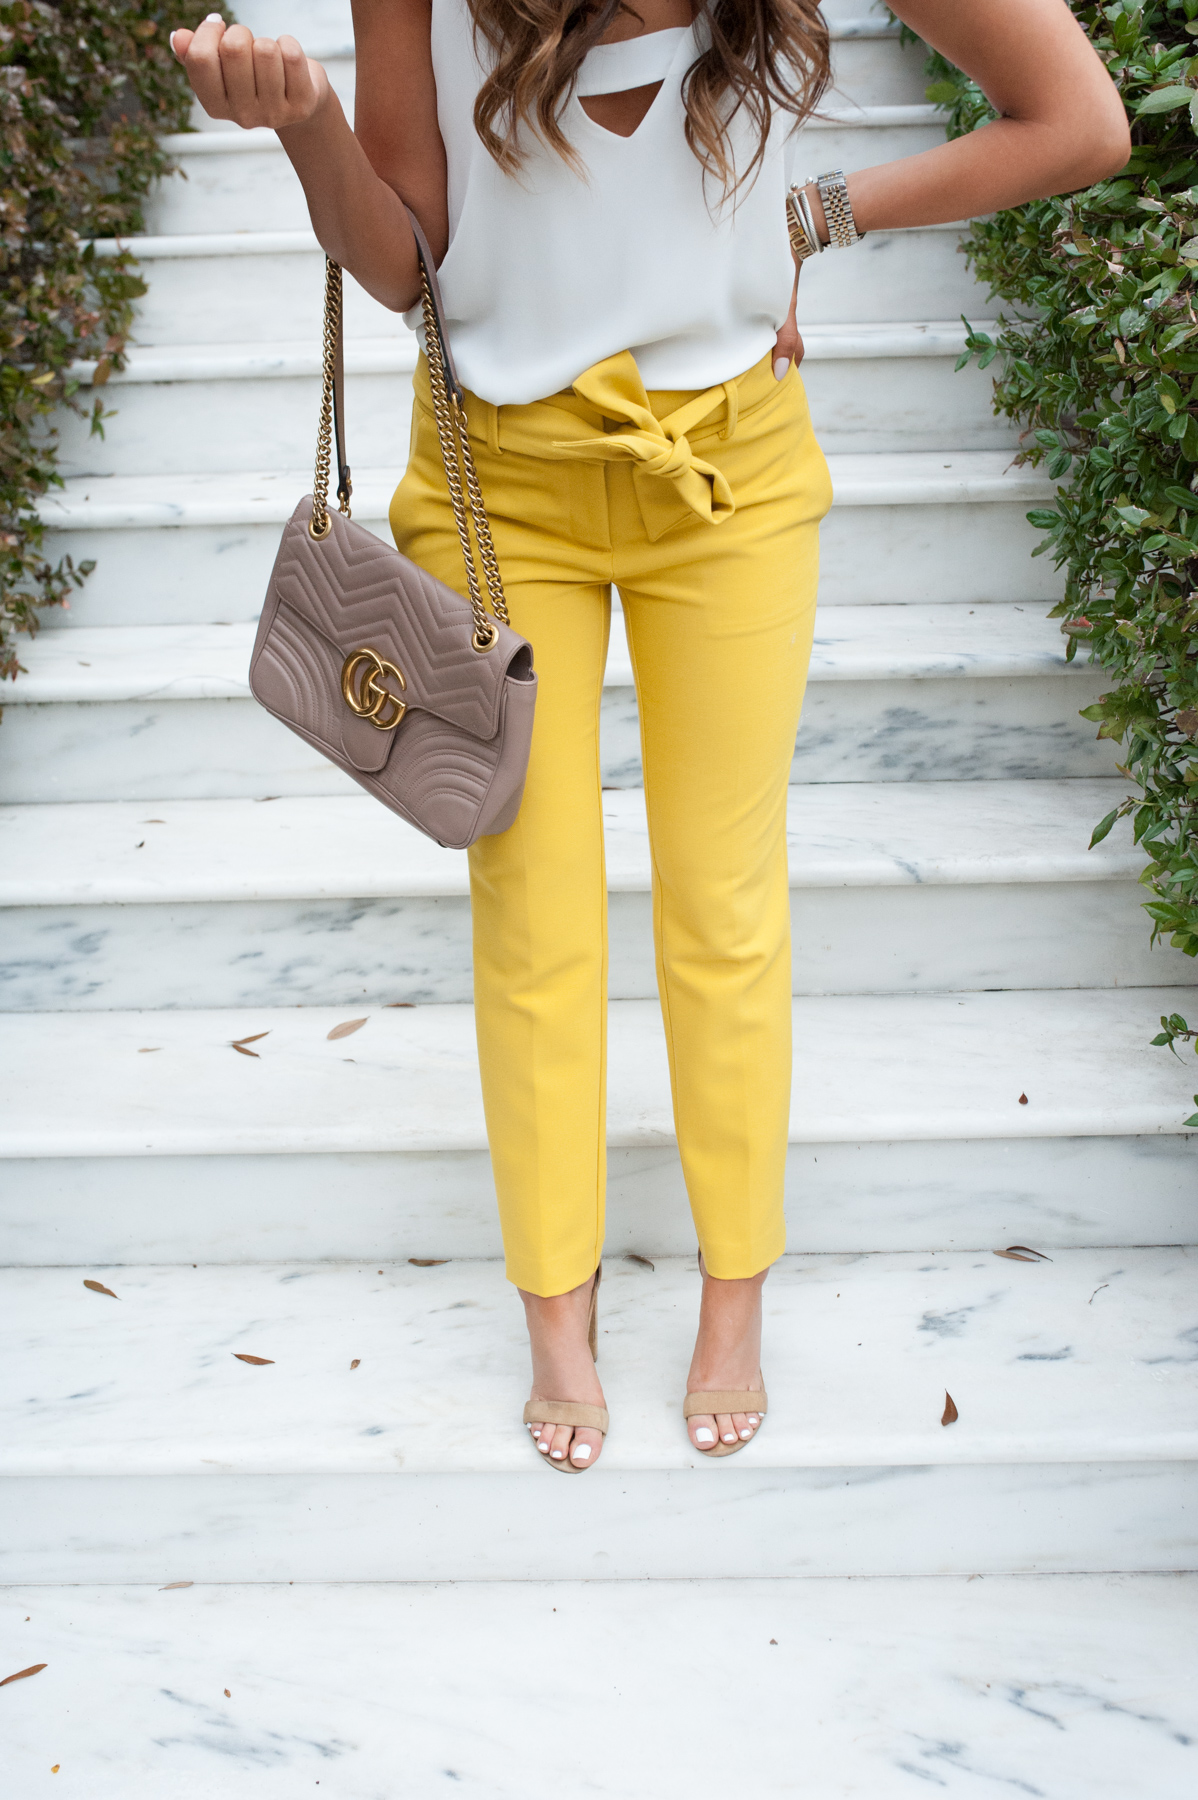 Brighten Up Your Workwear Pants